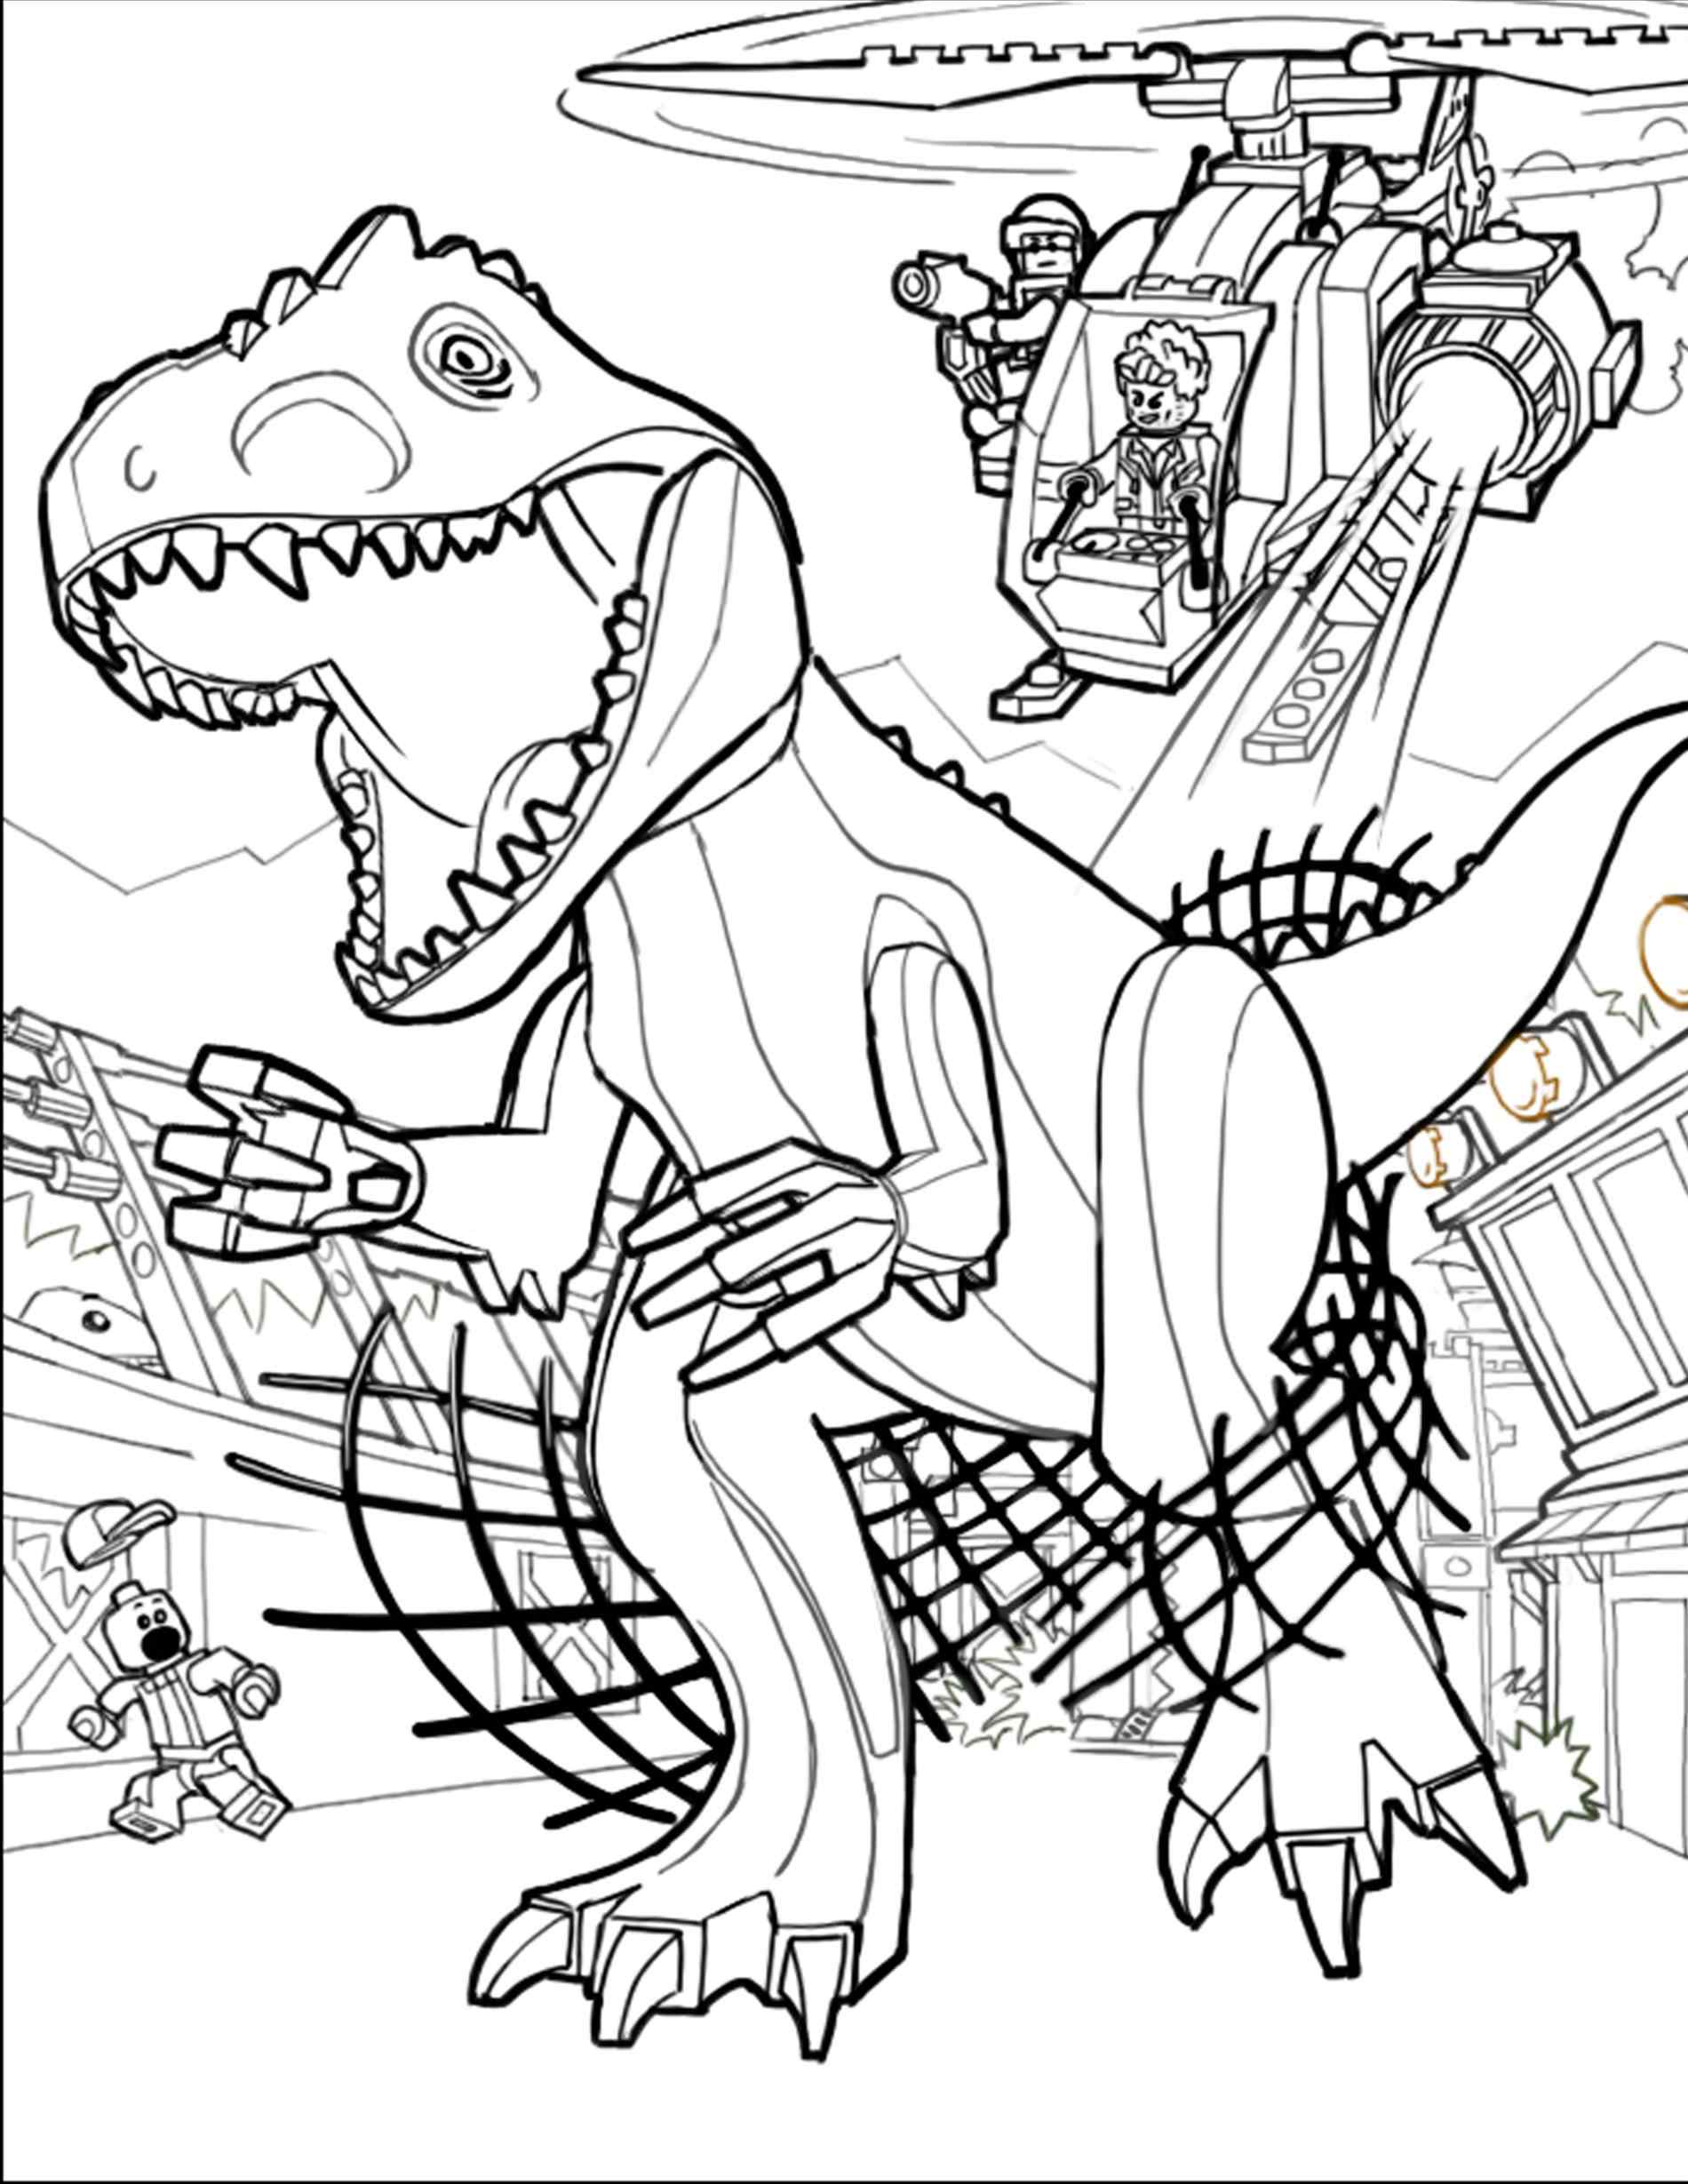 jurassic world indominus rex drawing at getdrawings com free for